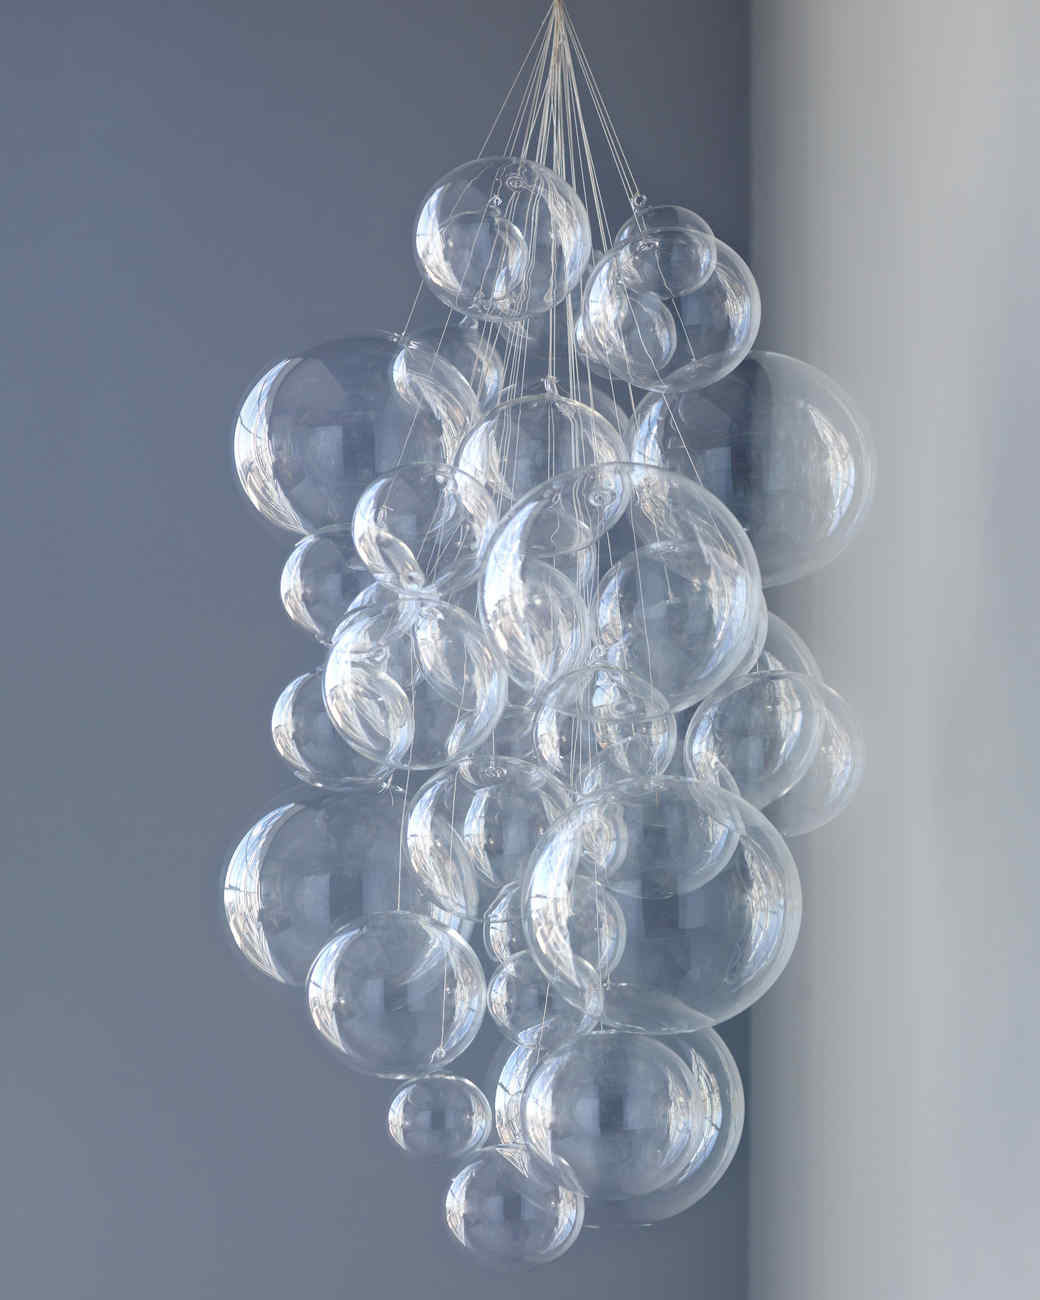 glass bubble chandelier lighting. Bubble Chandelier Glass Lighting J